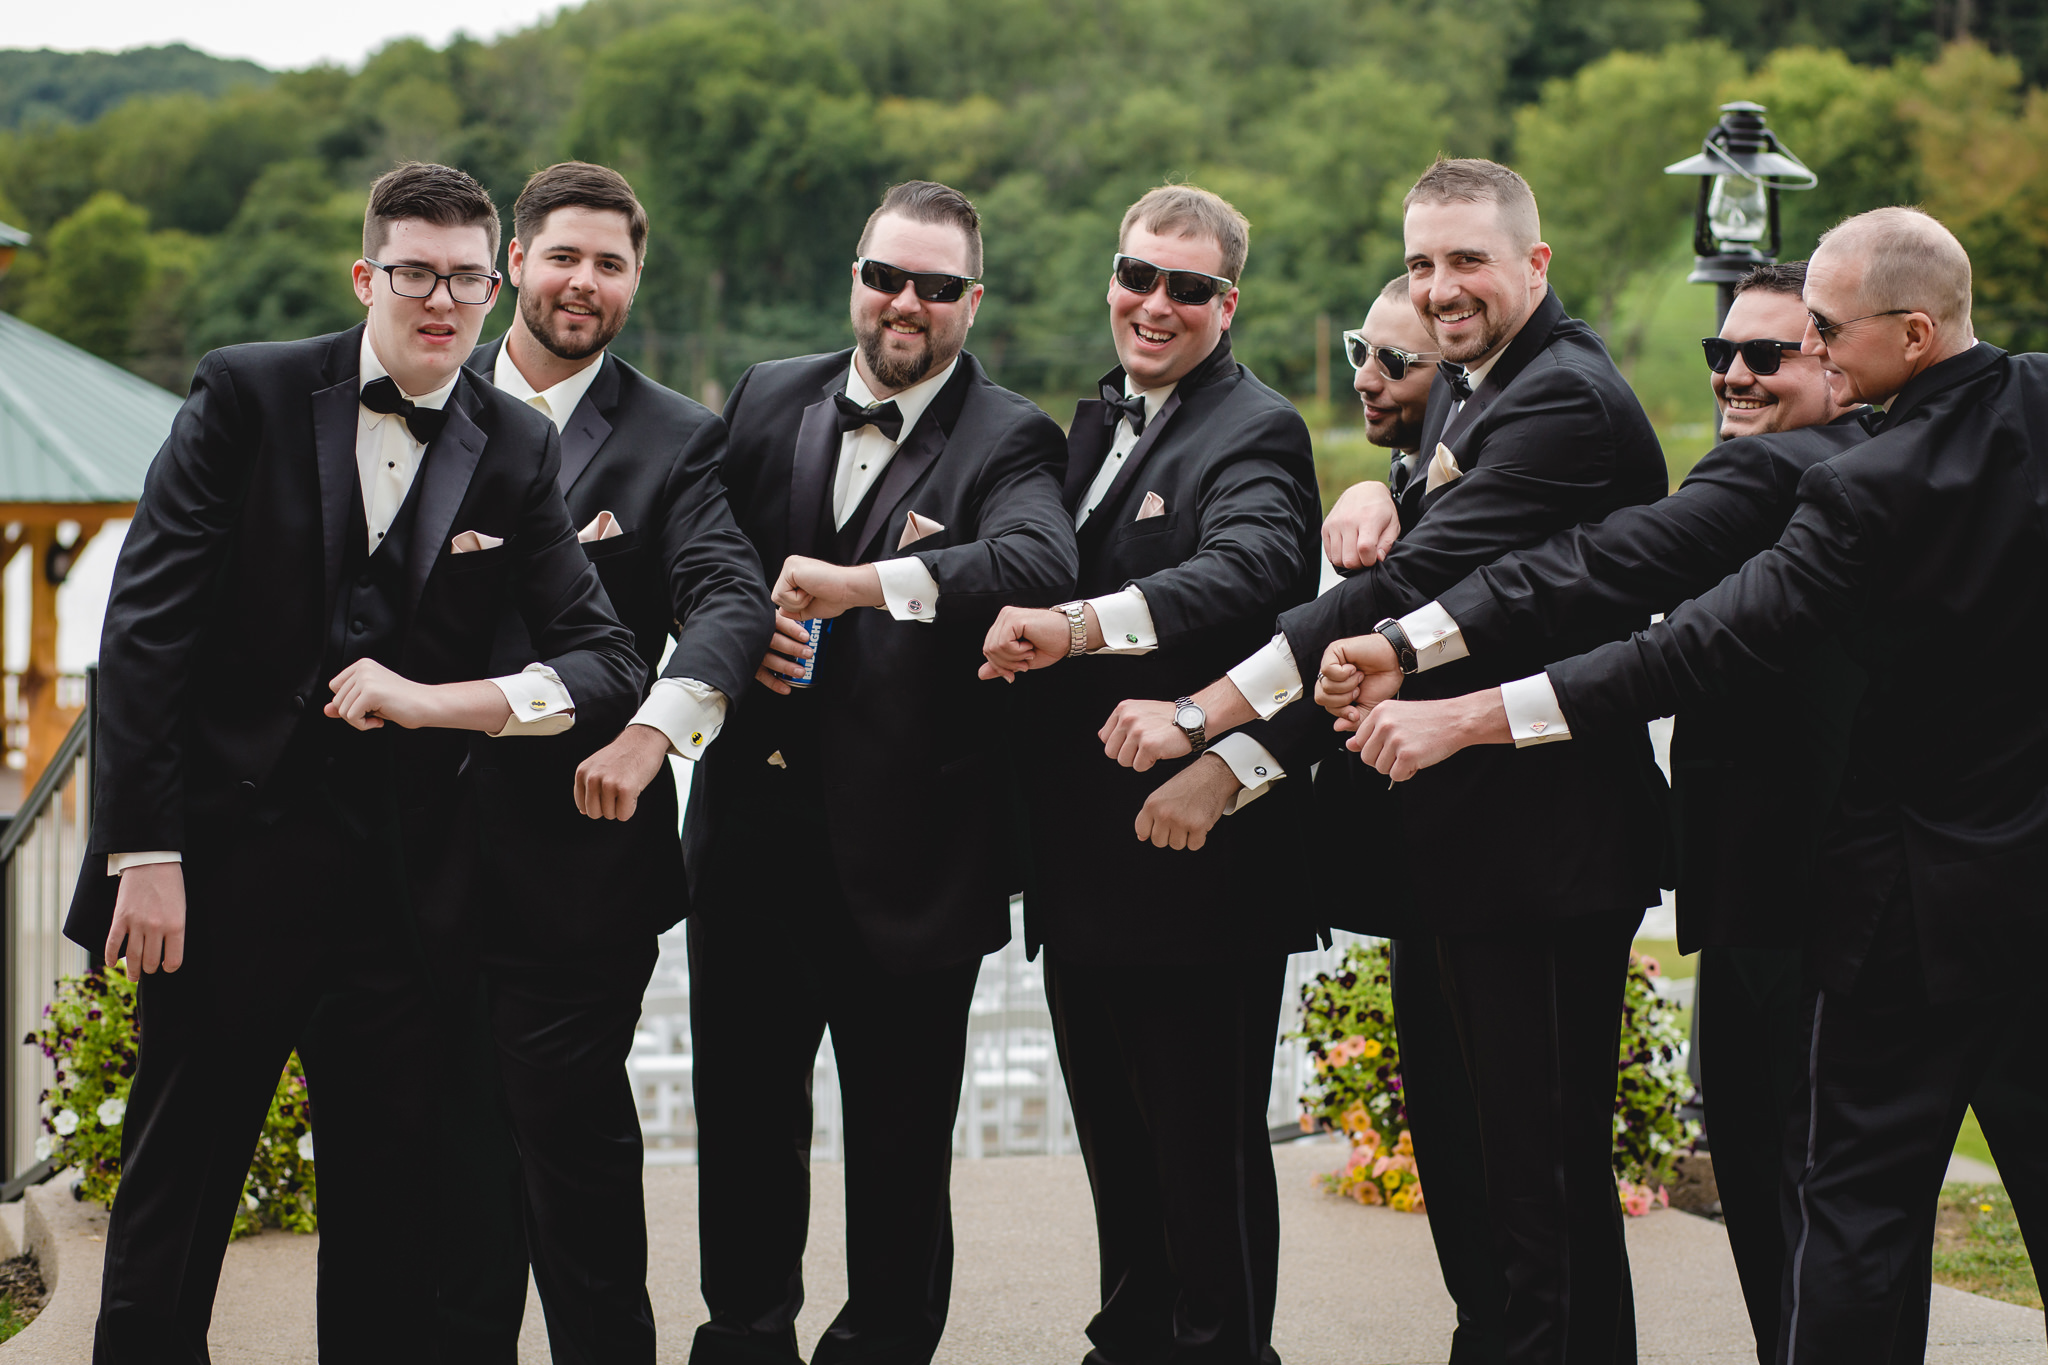 Groomsmen show off their super hero cufflinks at the Gathering Place at Darlington Lake